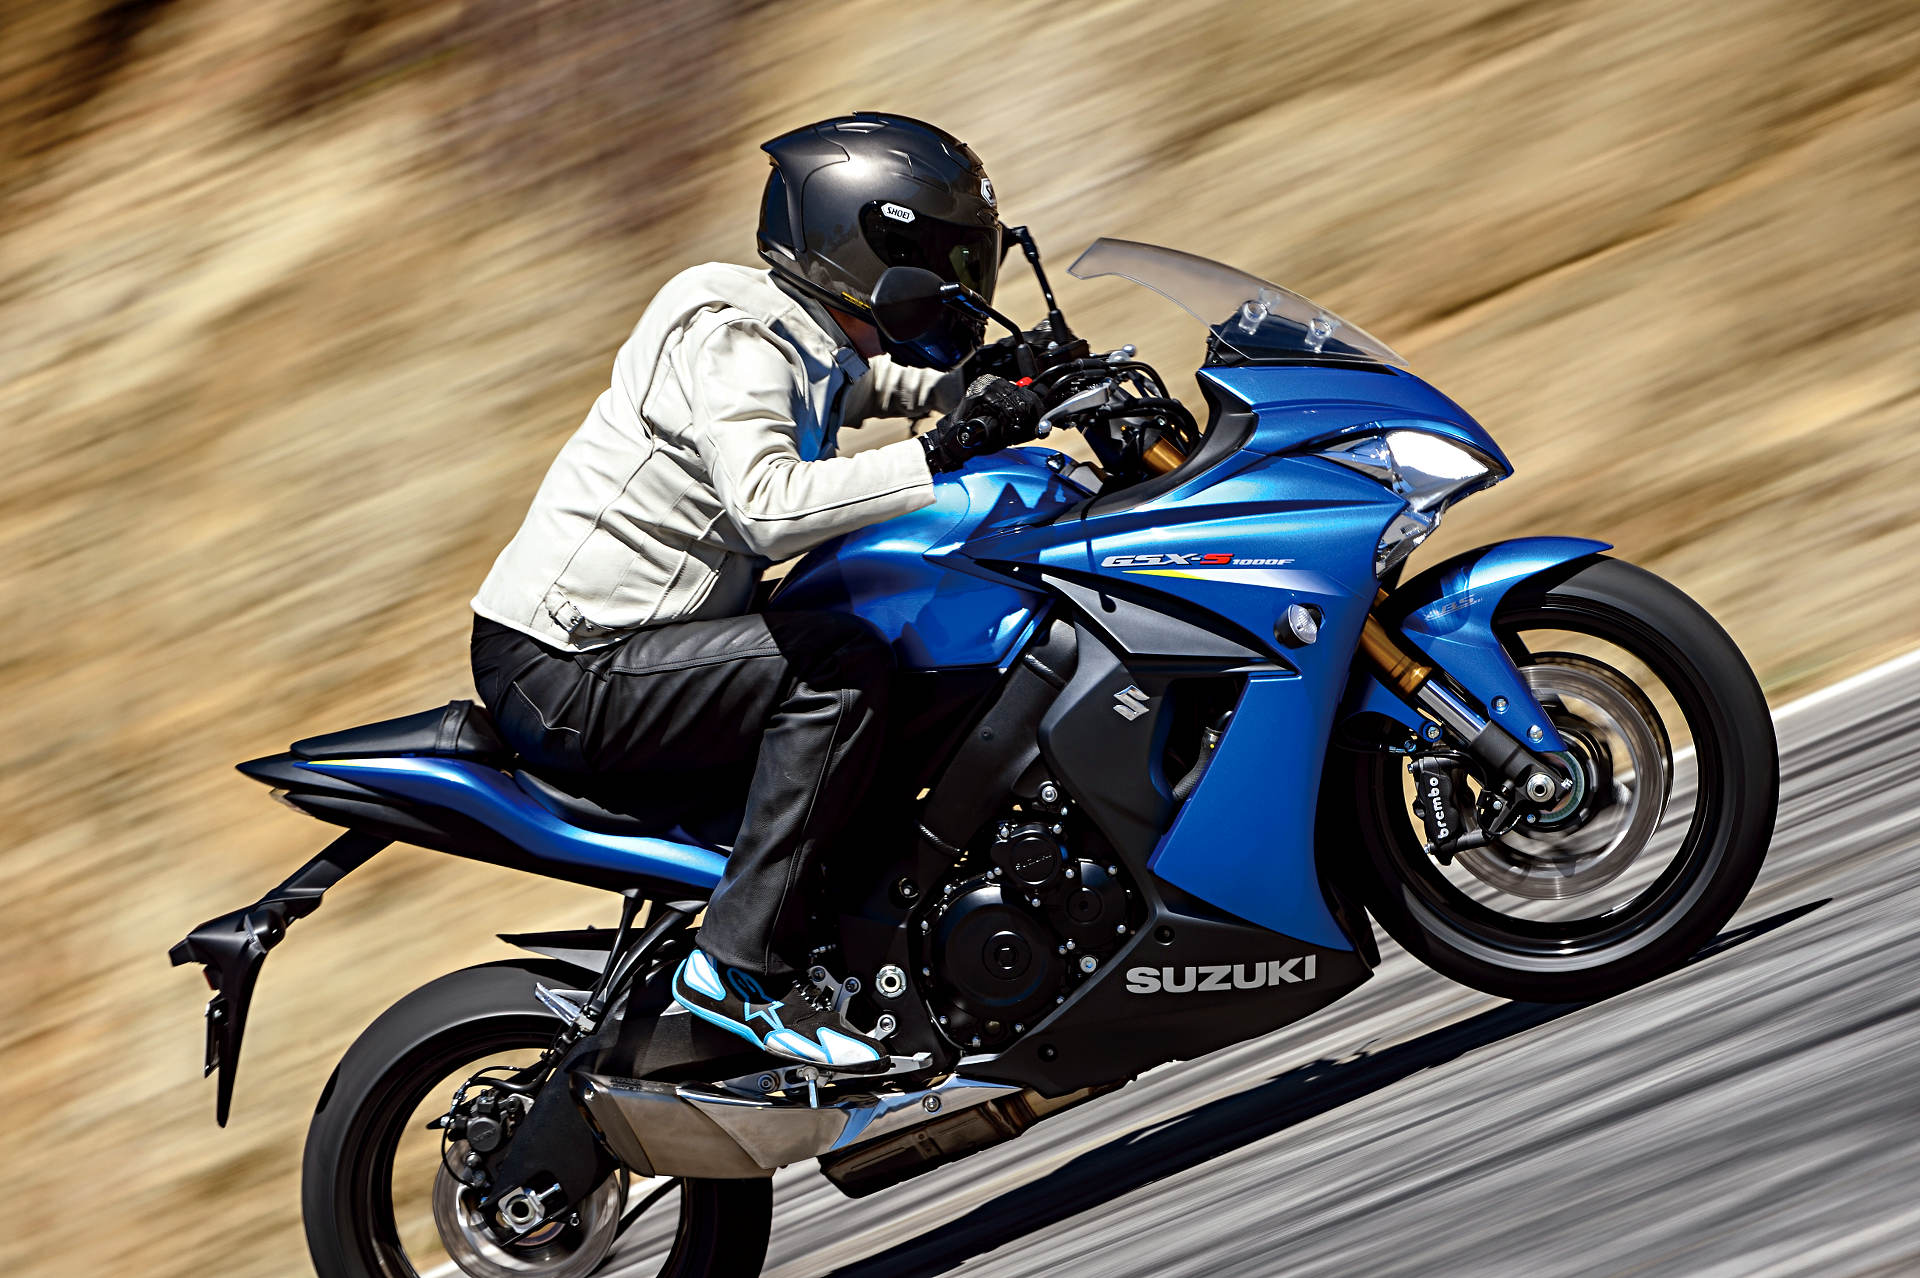 Suzuki announces early release 2016 models including details on gsx s1000 family